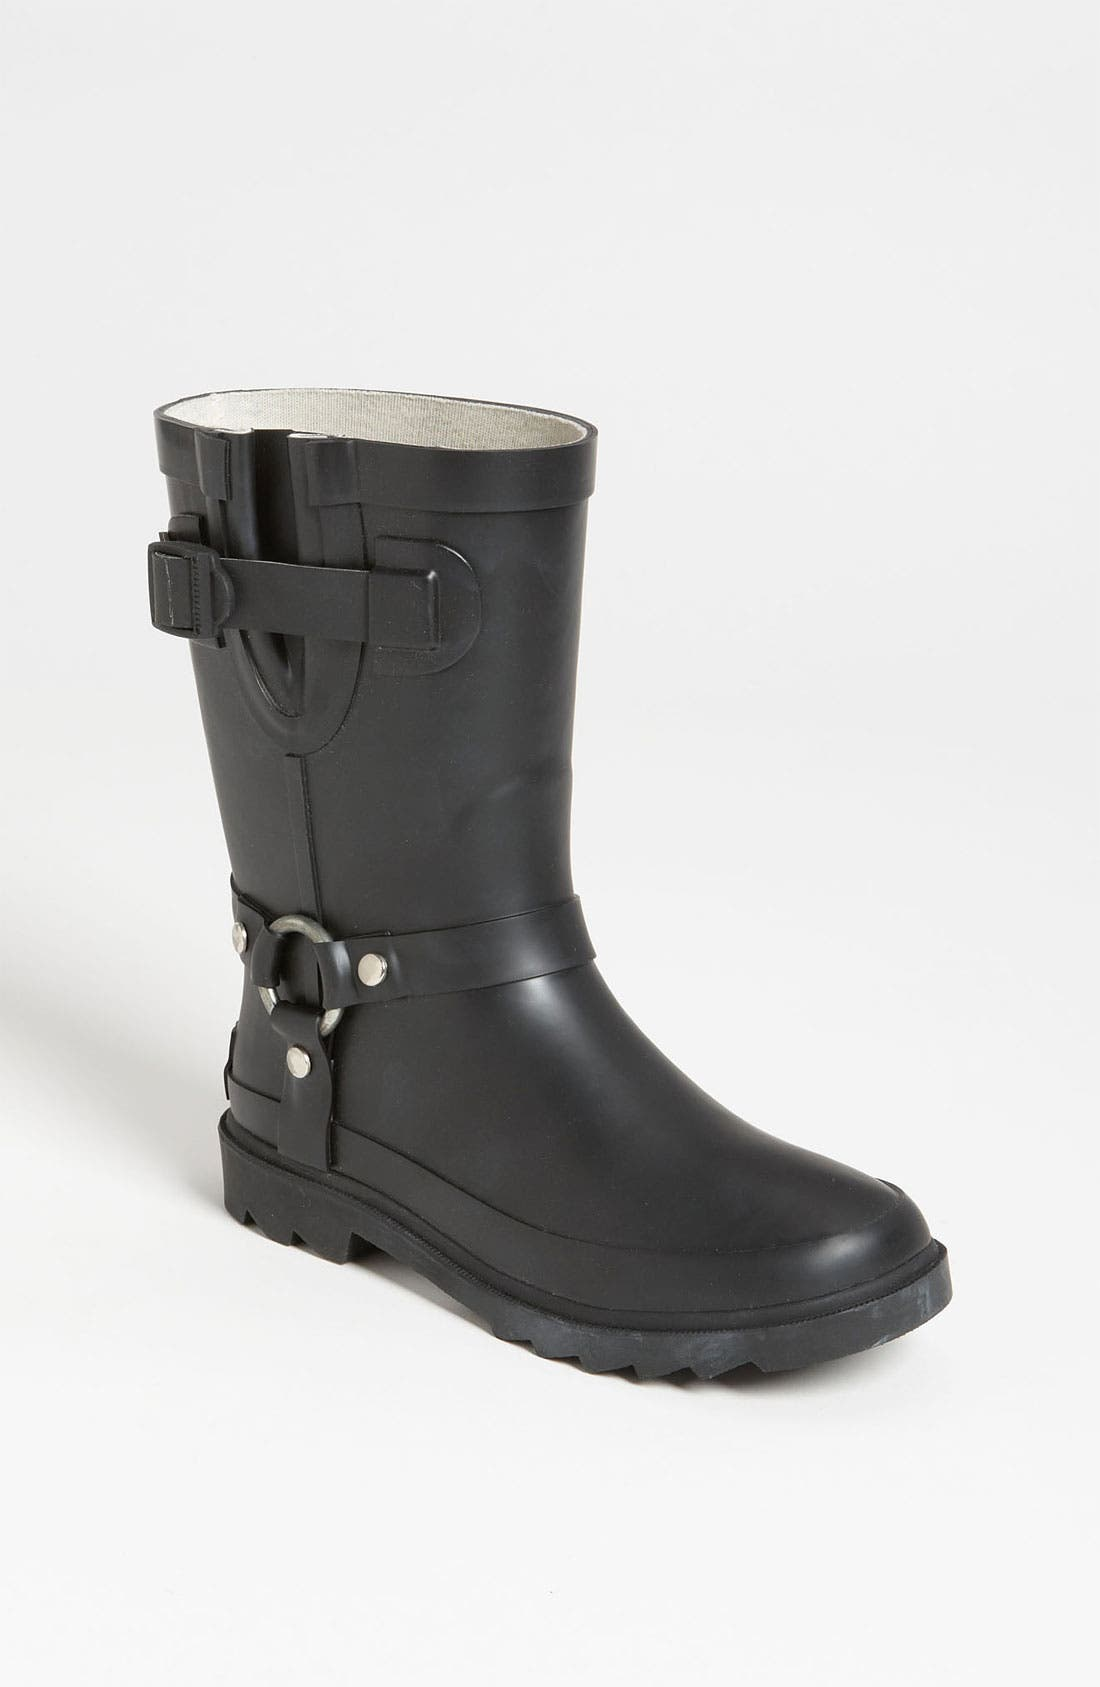 Main Image - kensie girl 'Script' Rain Boot (Little Kid)